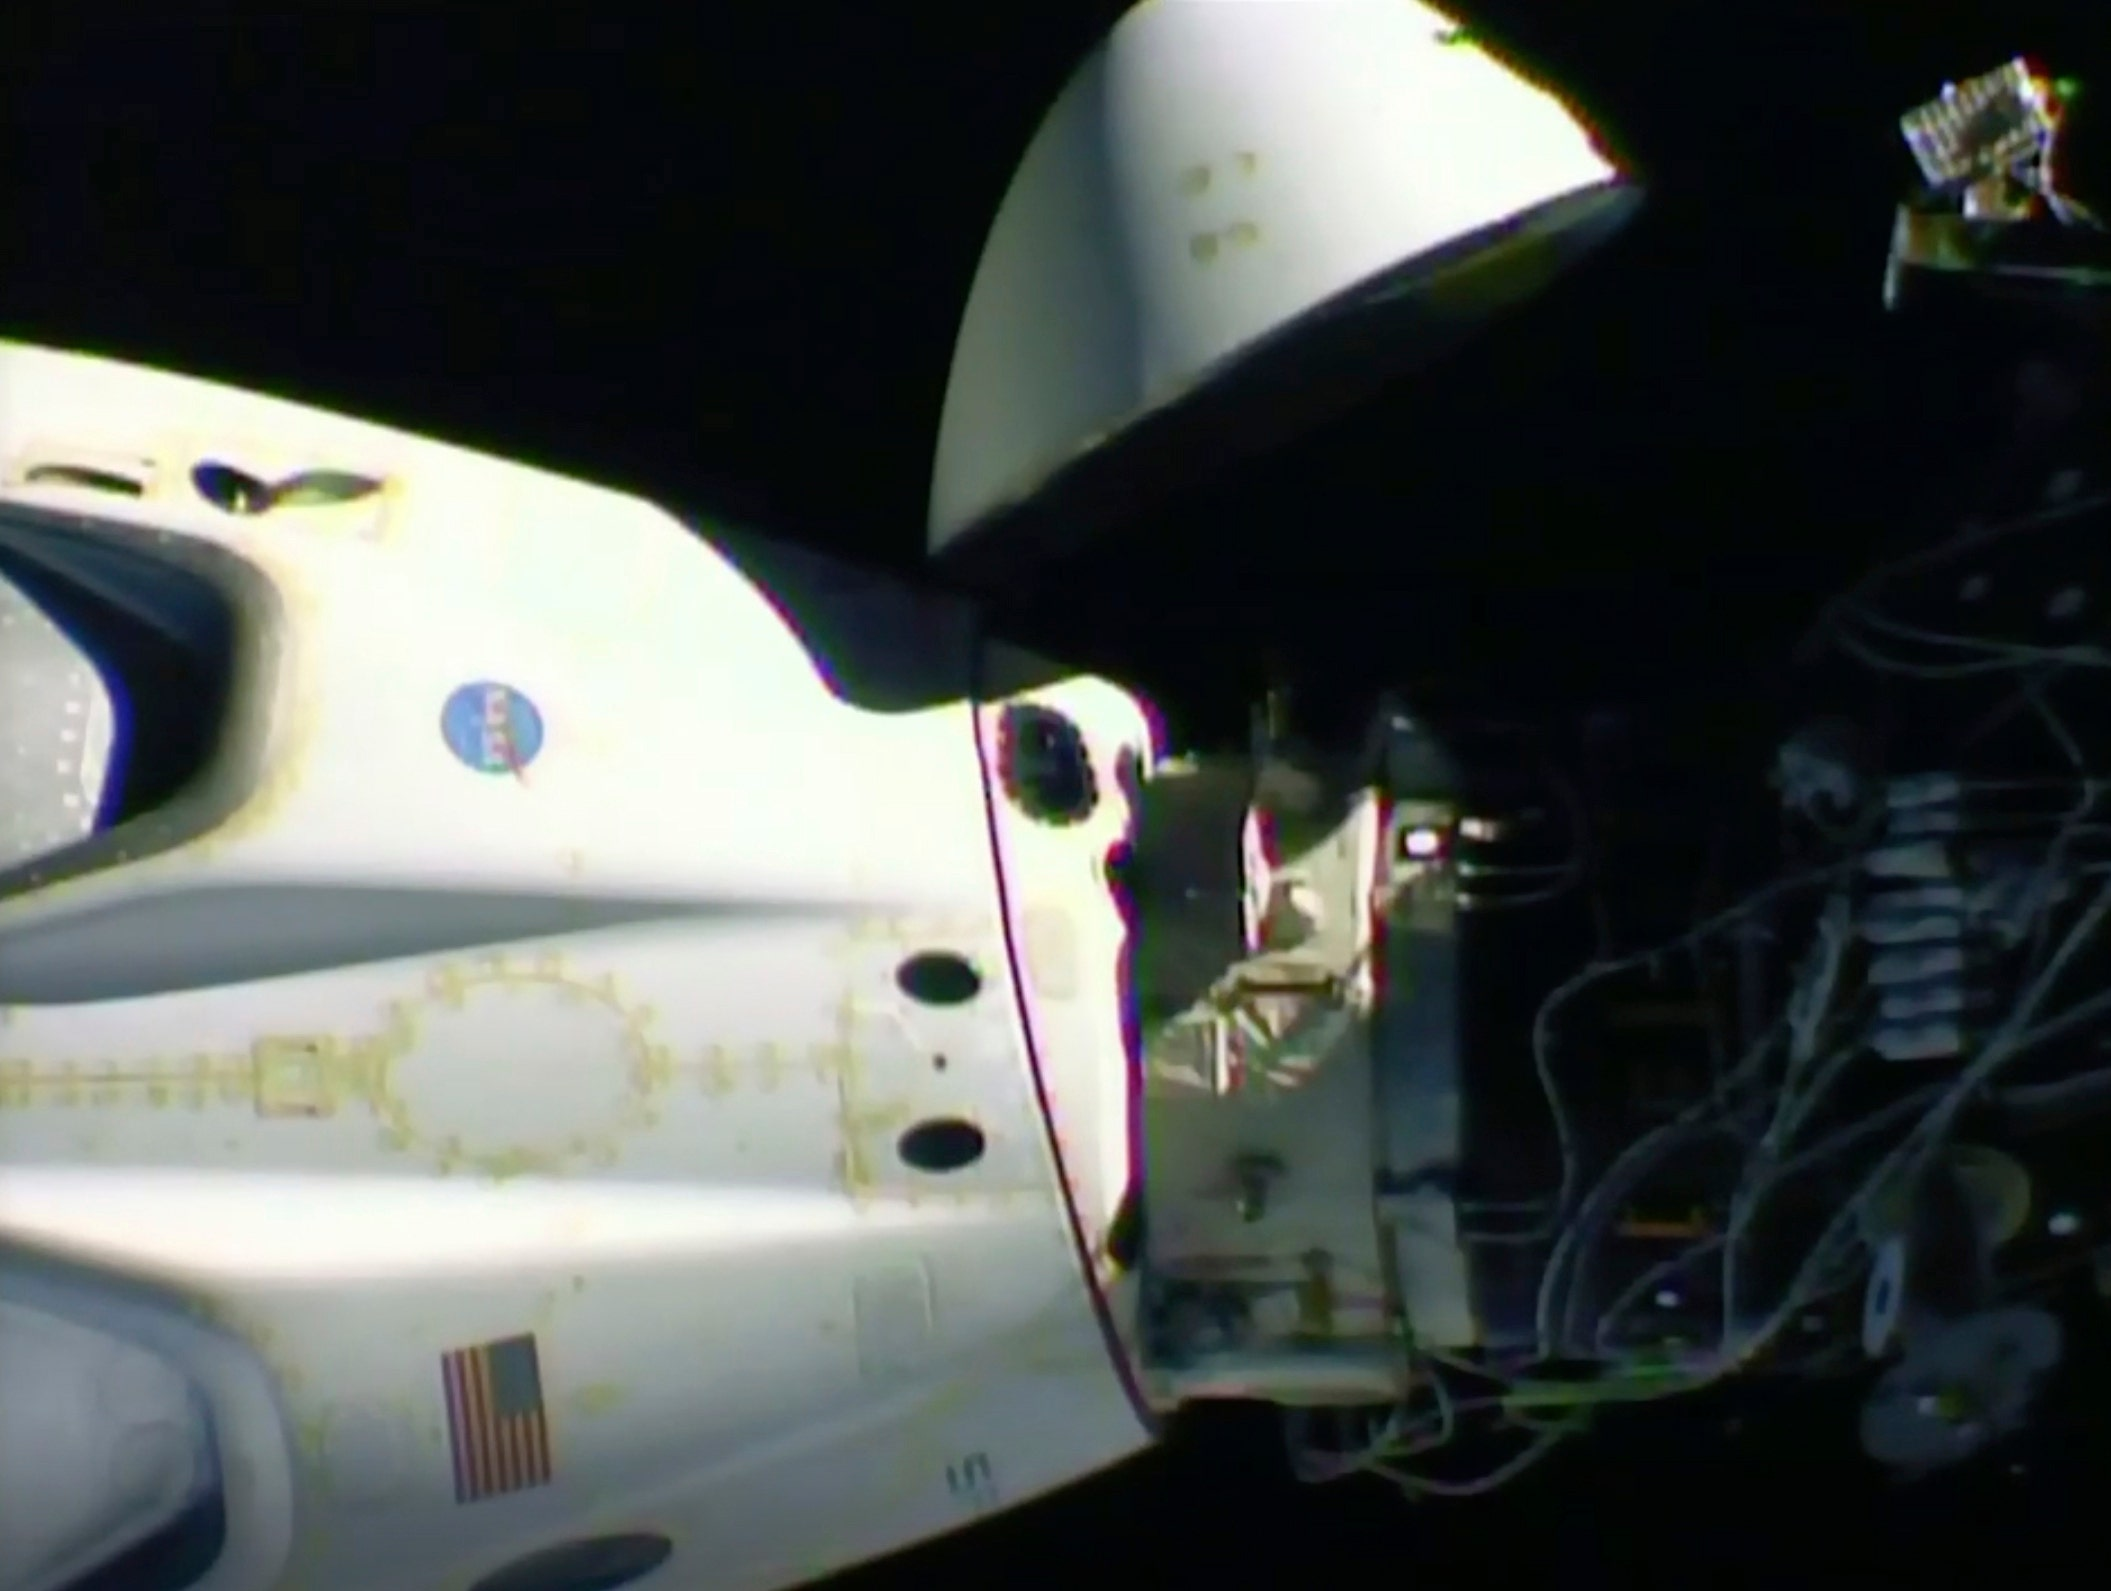 SpaceX's Dragon spacecraft splashes down off west coast of Florida – Fox Business